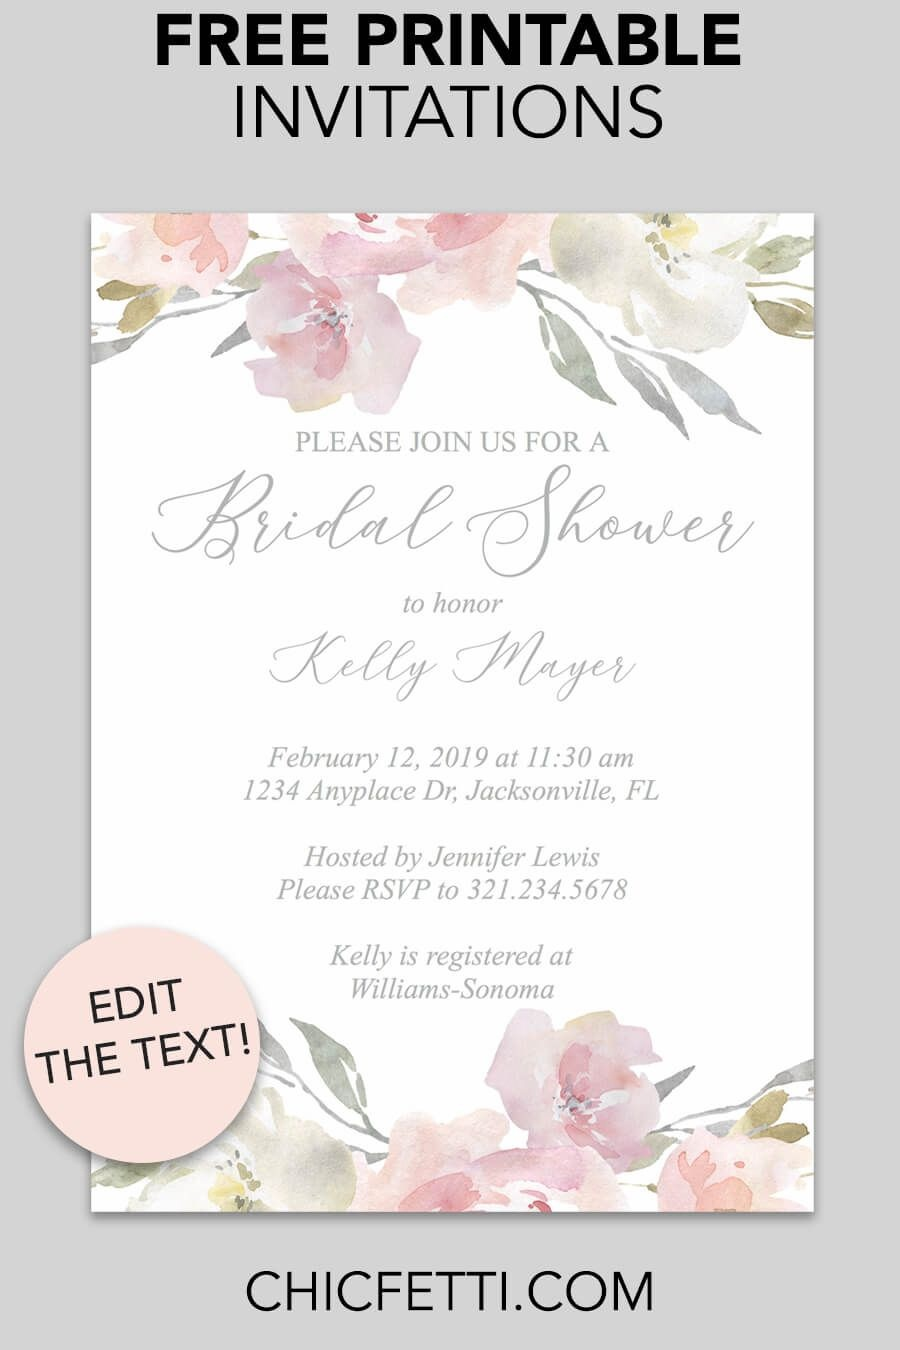 Bridal Shower Printable Invitation (Blush Floral | Invitations - Free Printable Bridal Shower Invitations